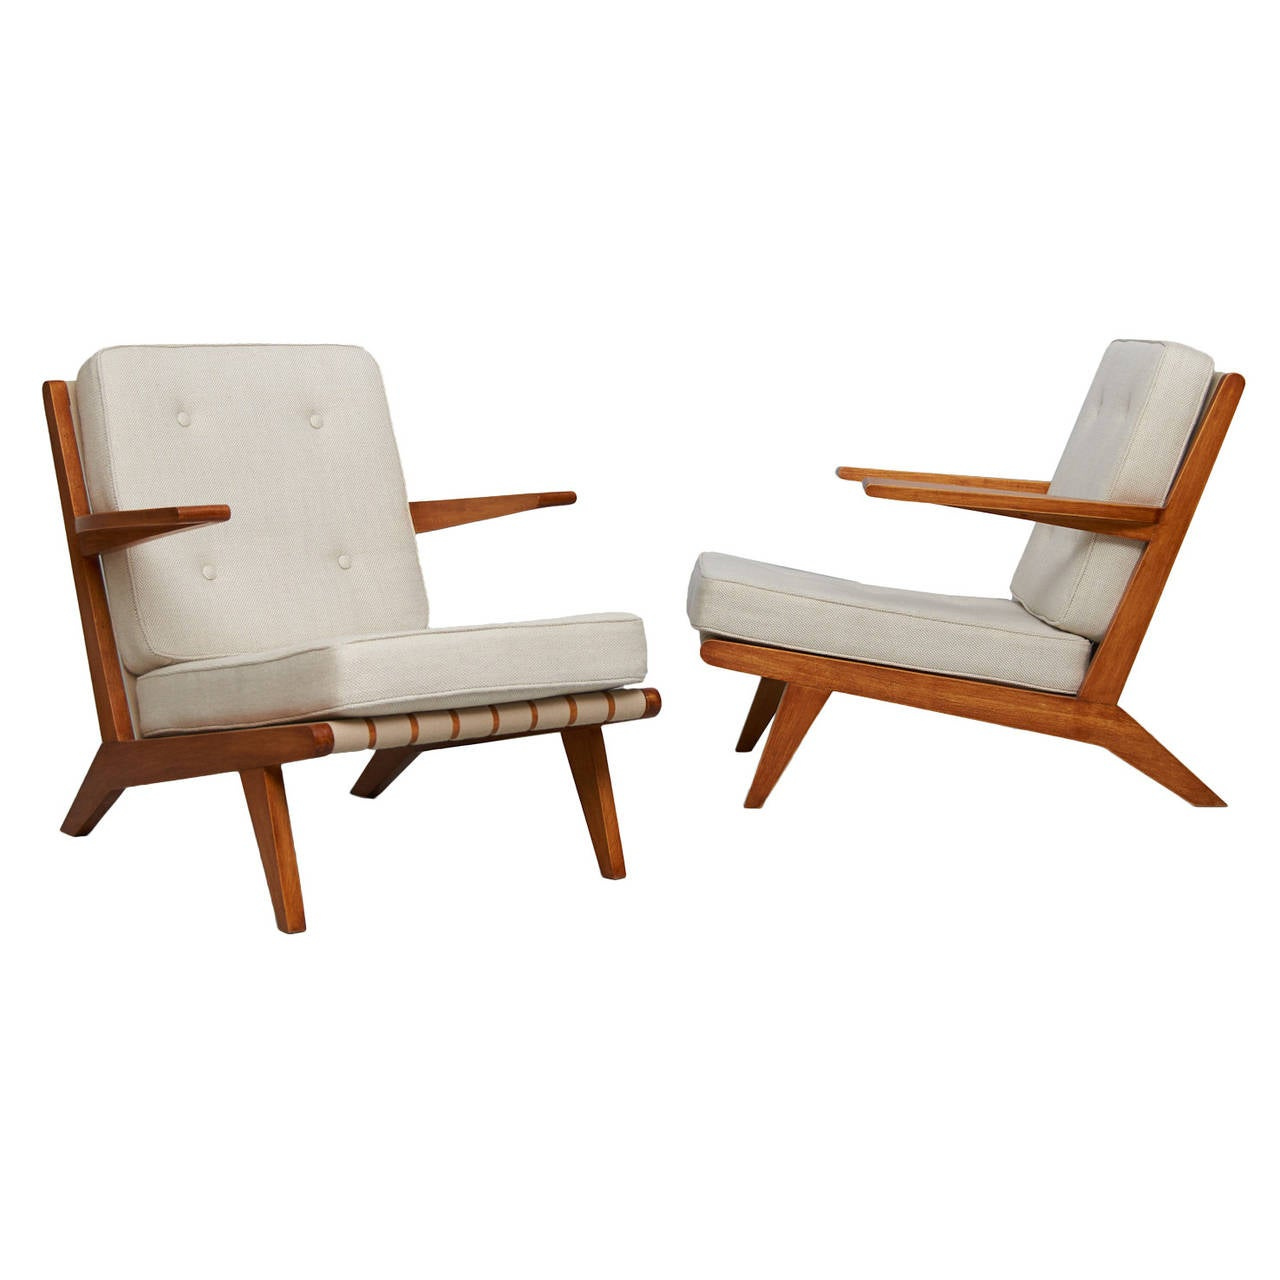 "Pair of Joaquim Tenreiro ""Sleepwalker's"" Armchair"